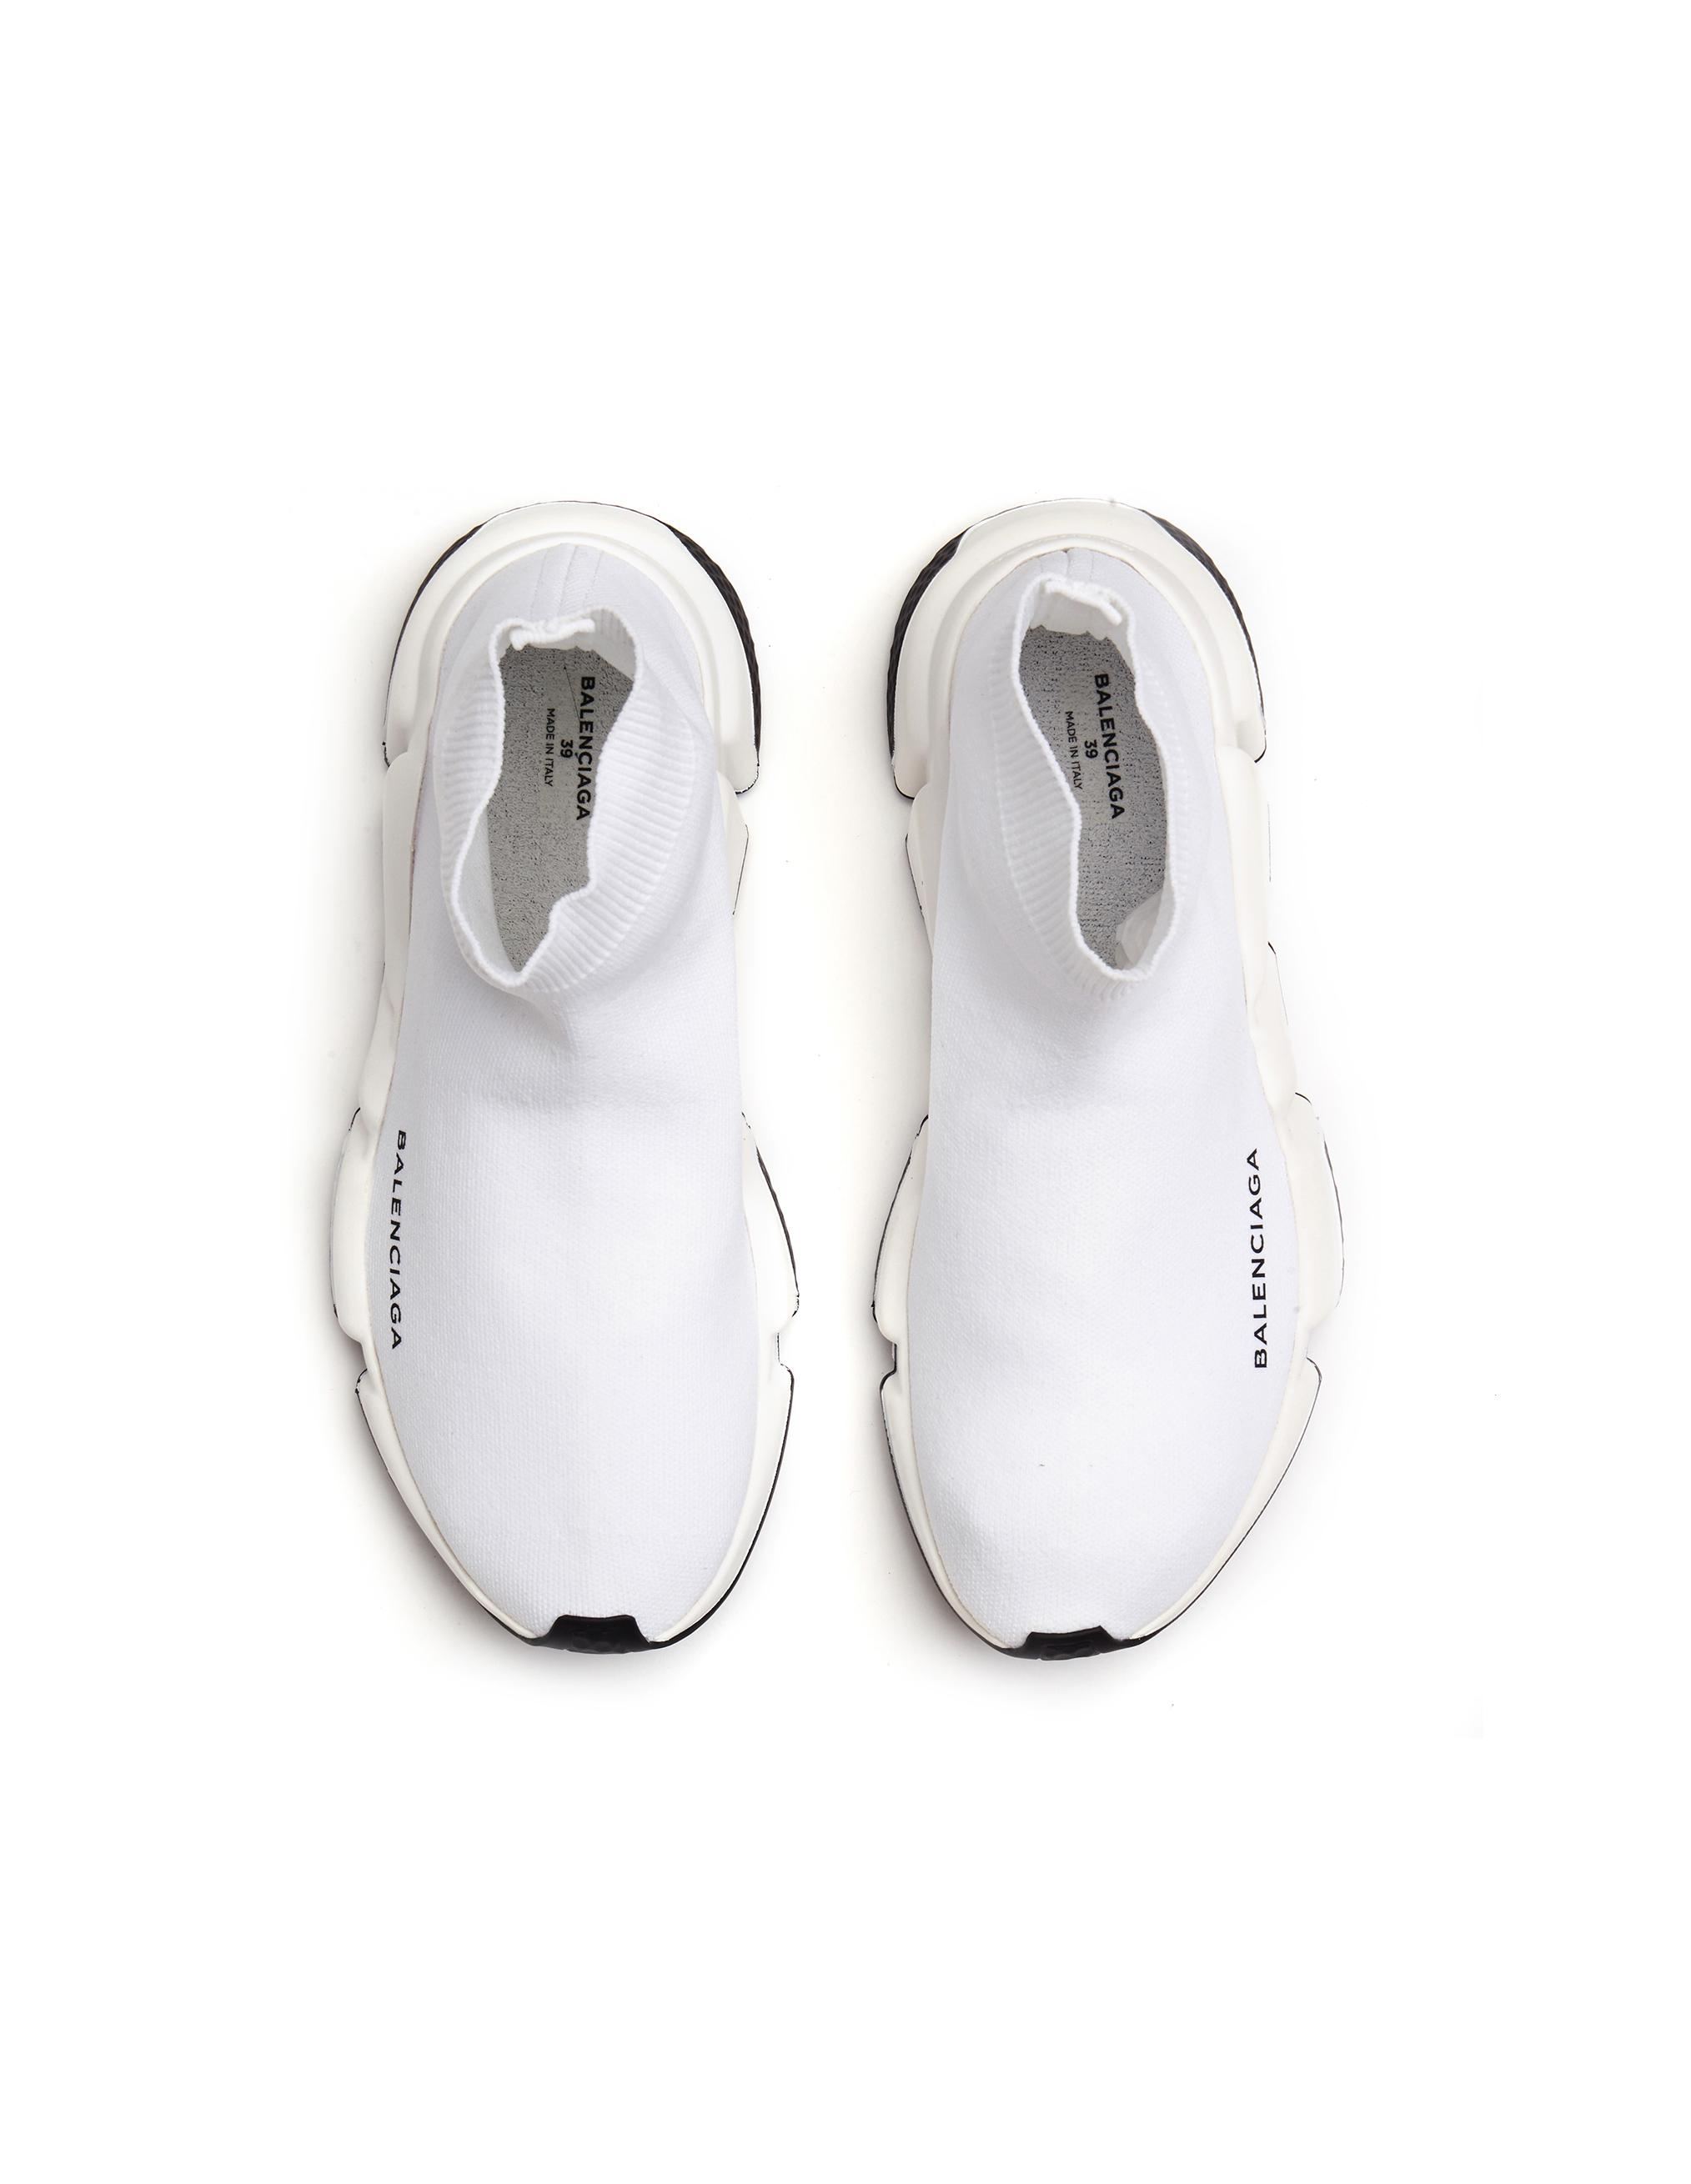 18a7a57ddaef Lyst - Balenciaga Speed Trainer Sneakers in White - Save 12%